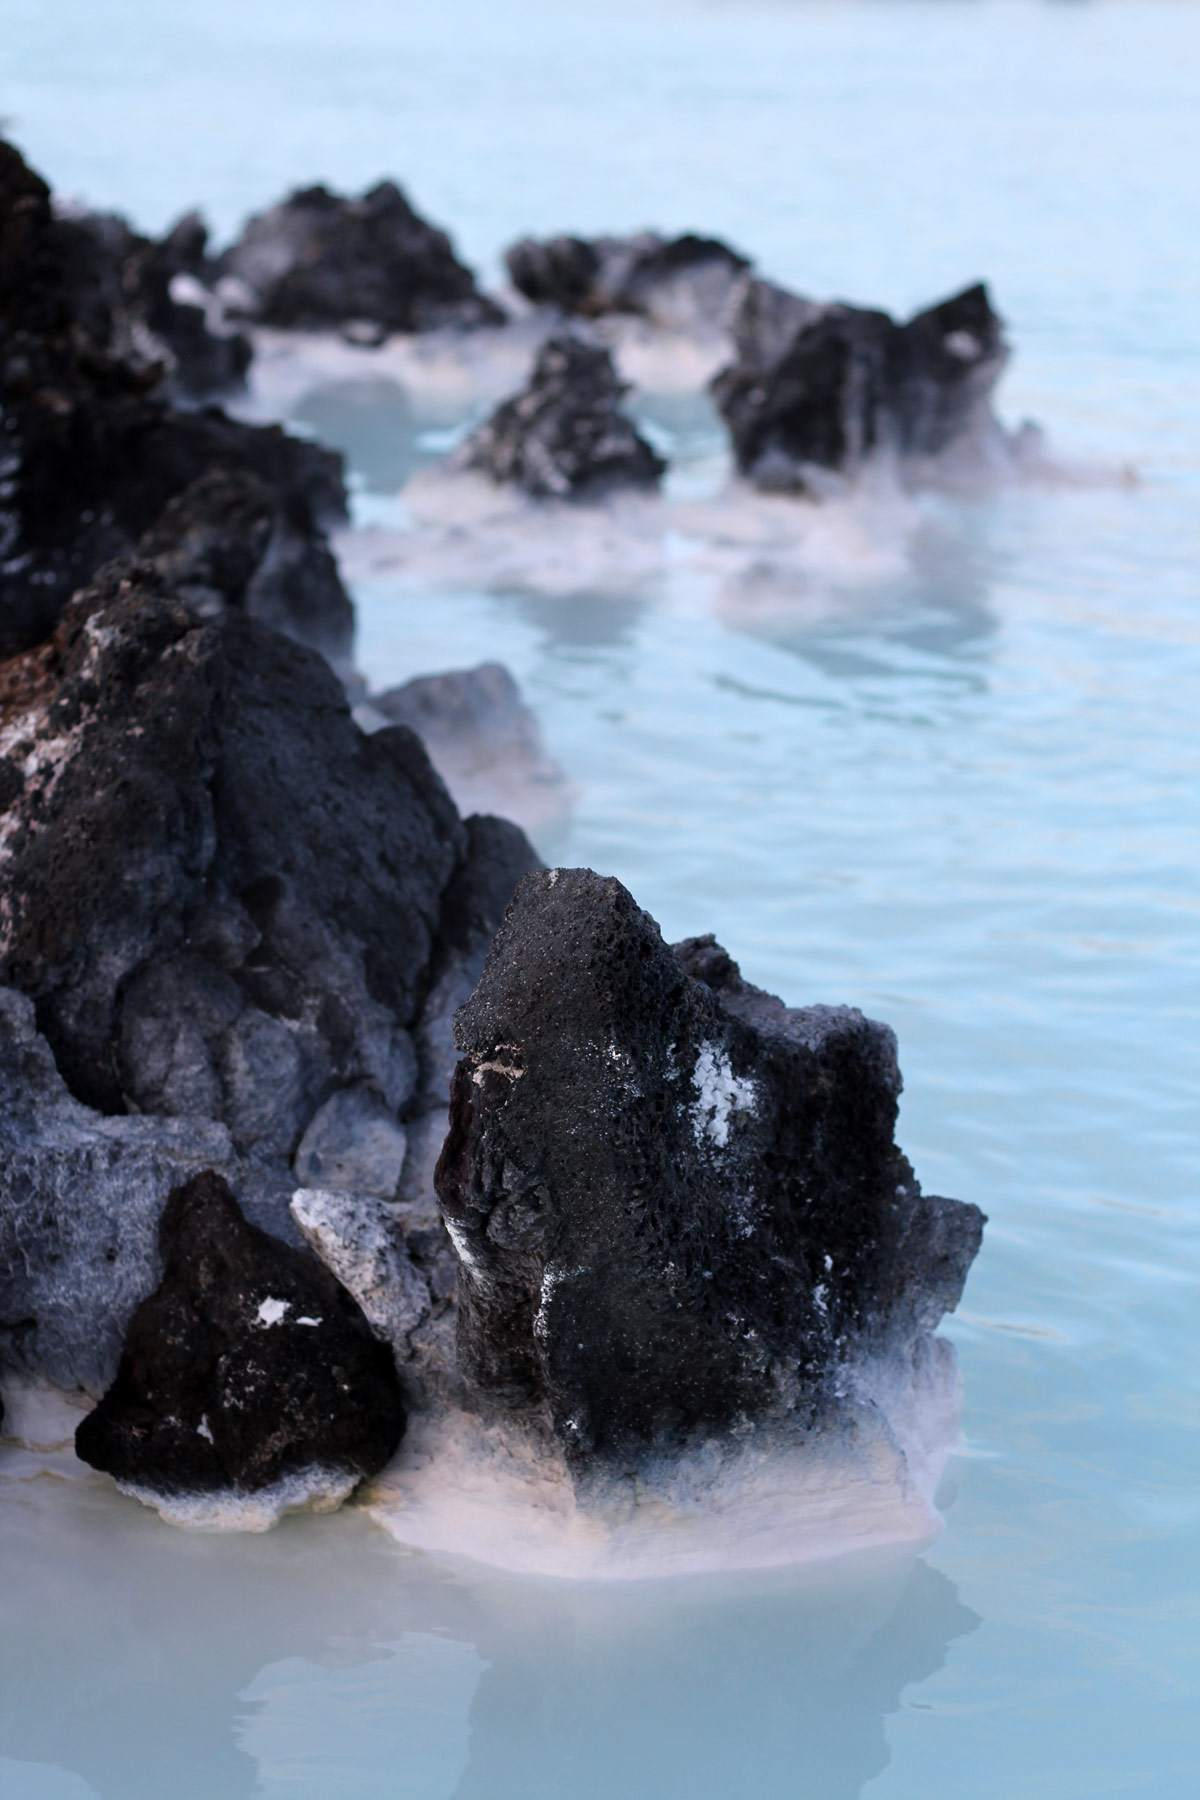 iceland-reykjavik-keflavik-review-photo-diary-travel-blog-the-blue-lagoon-1